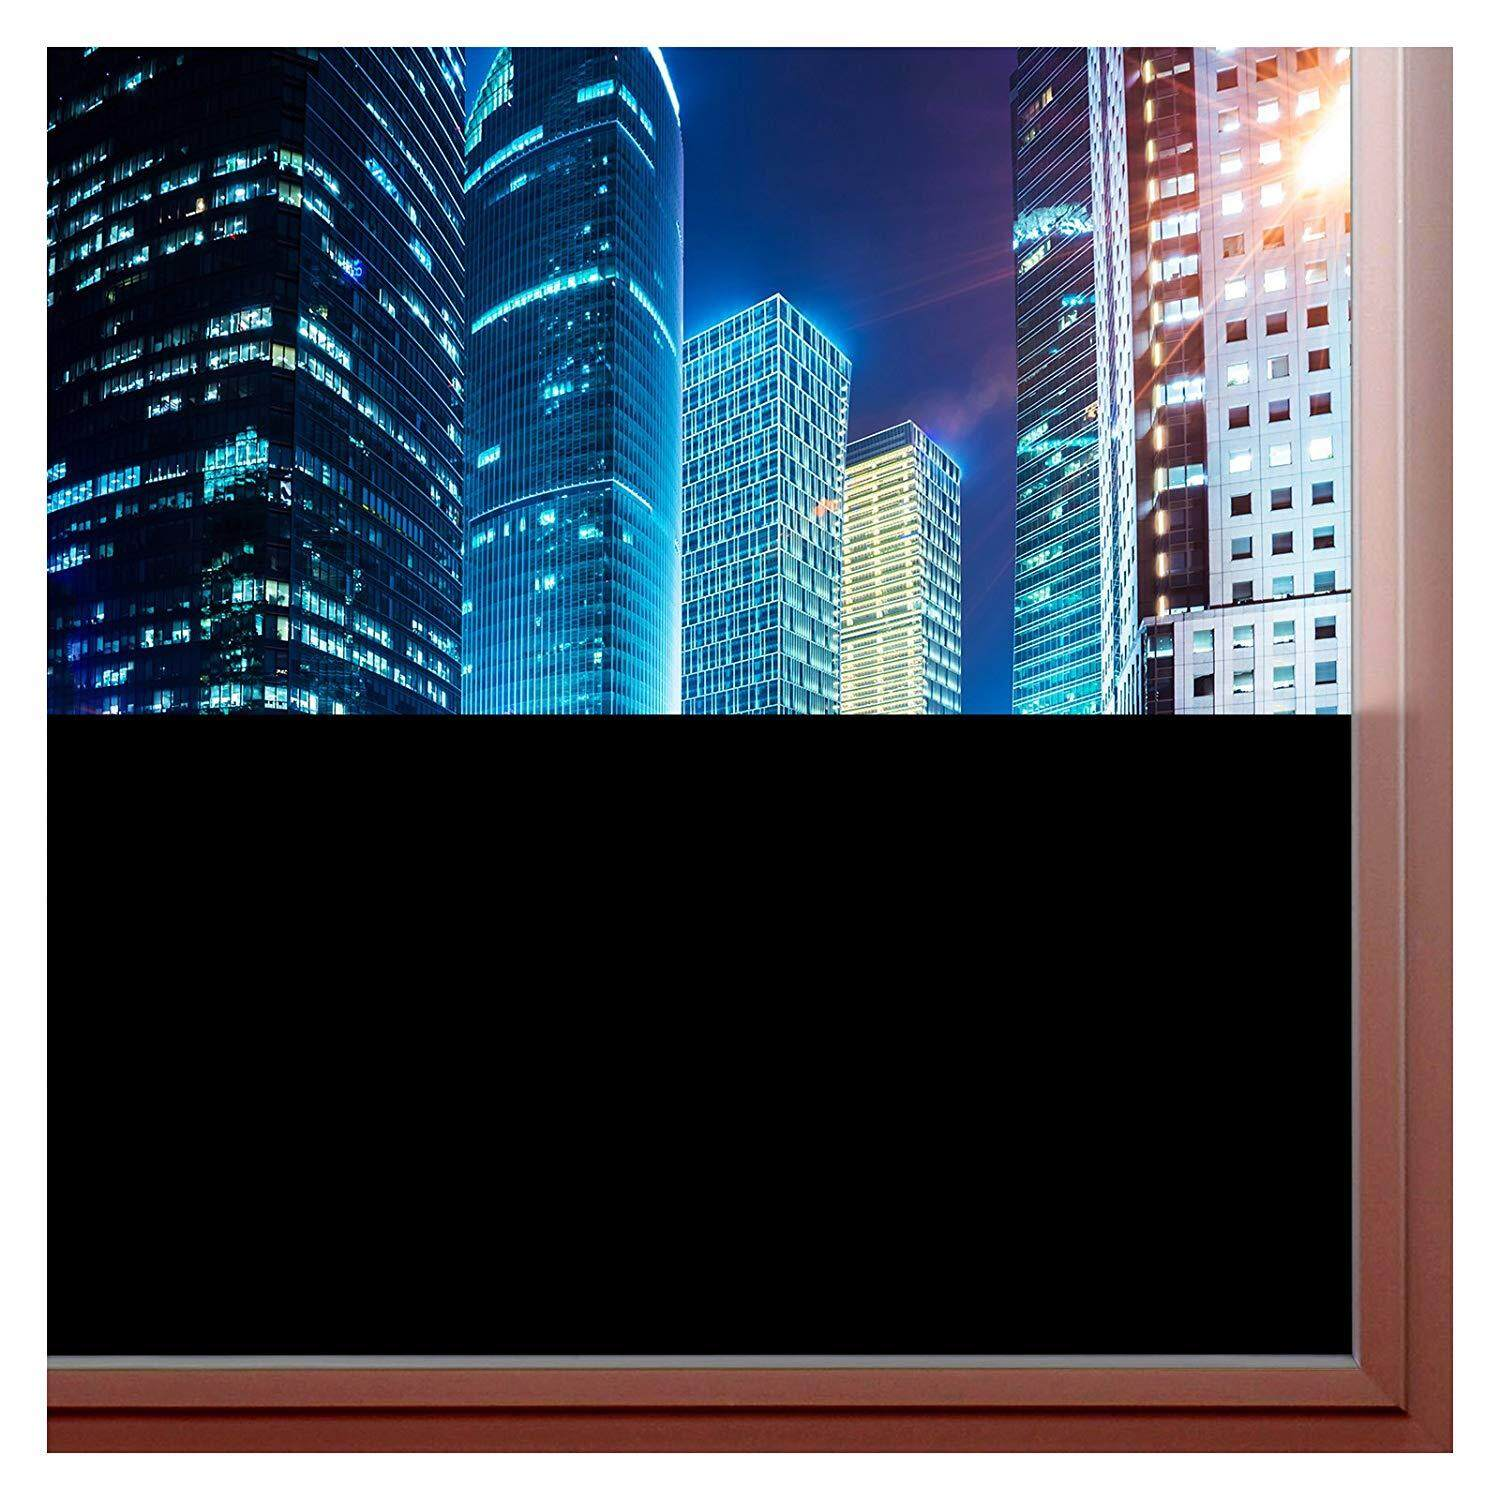 Window Film Blackout (Non Adhesive Static Cling) 100% Light Blocking - Easy Installation, Removal & No Residue- 36in X 14ft